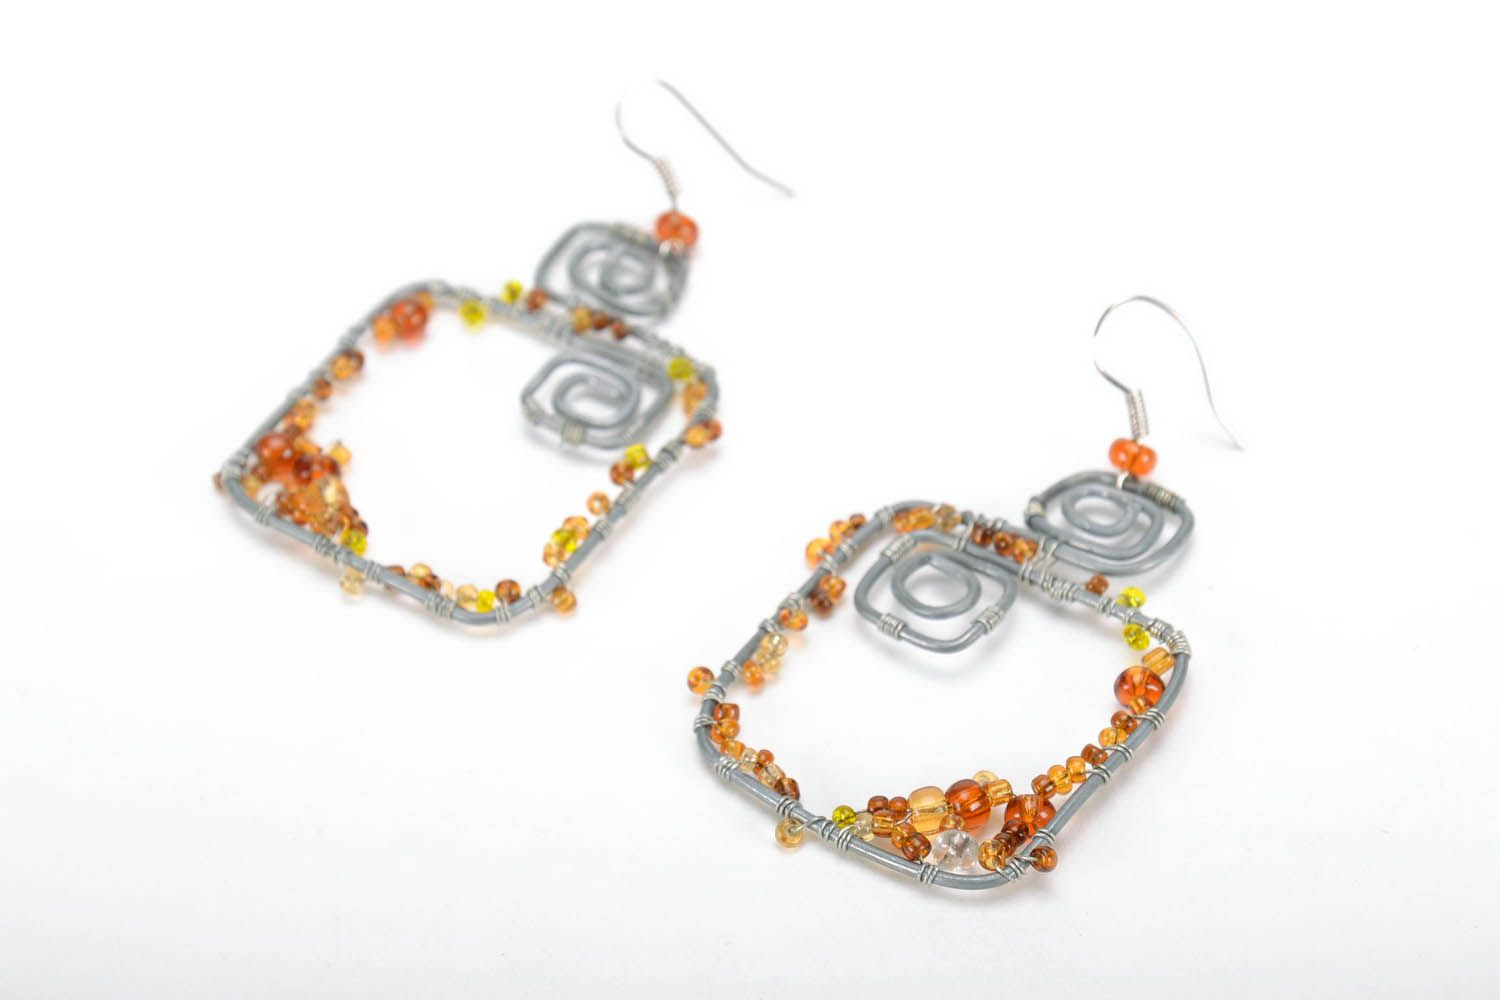 Earrings with natural stones photo 2